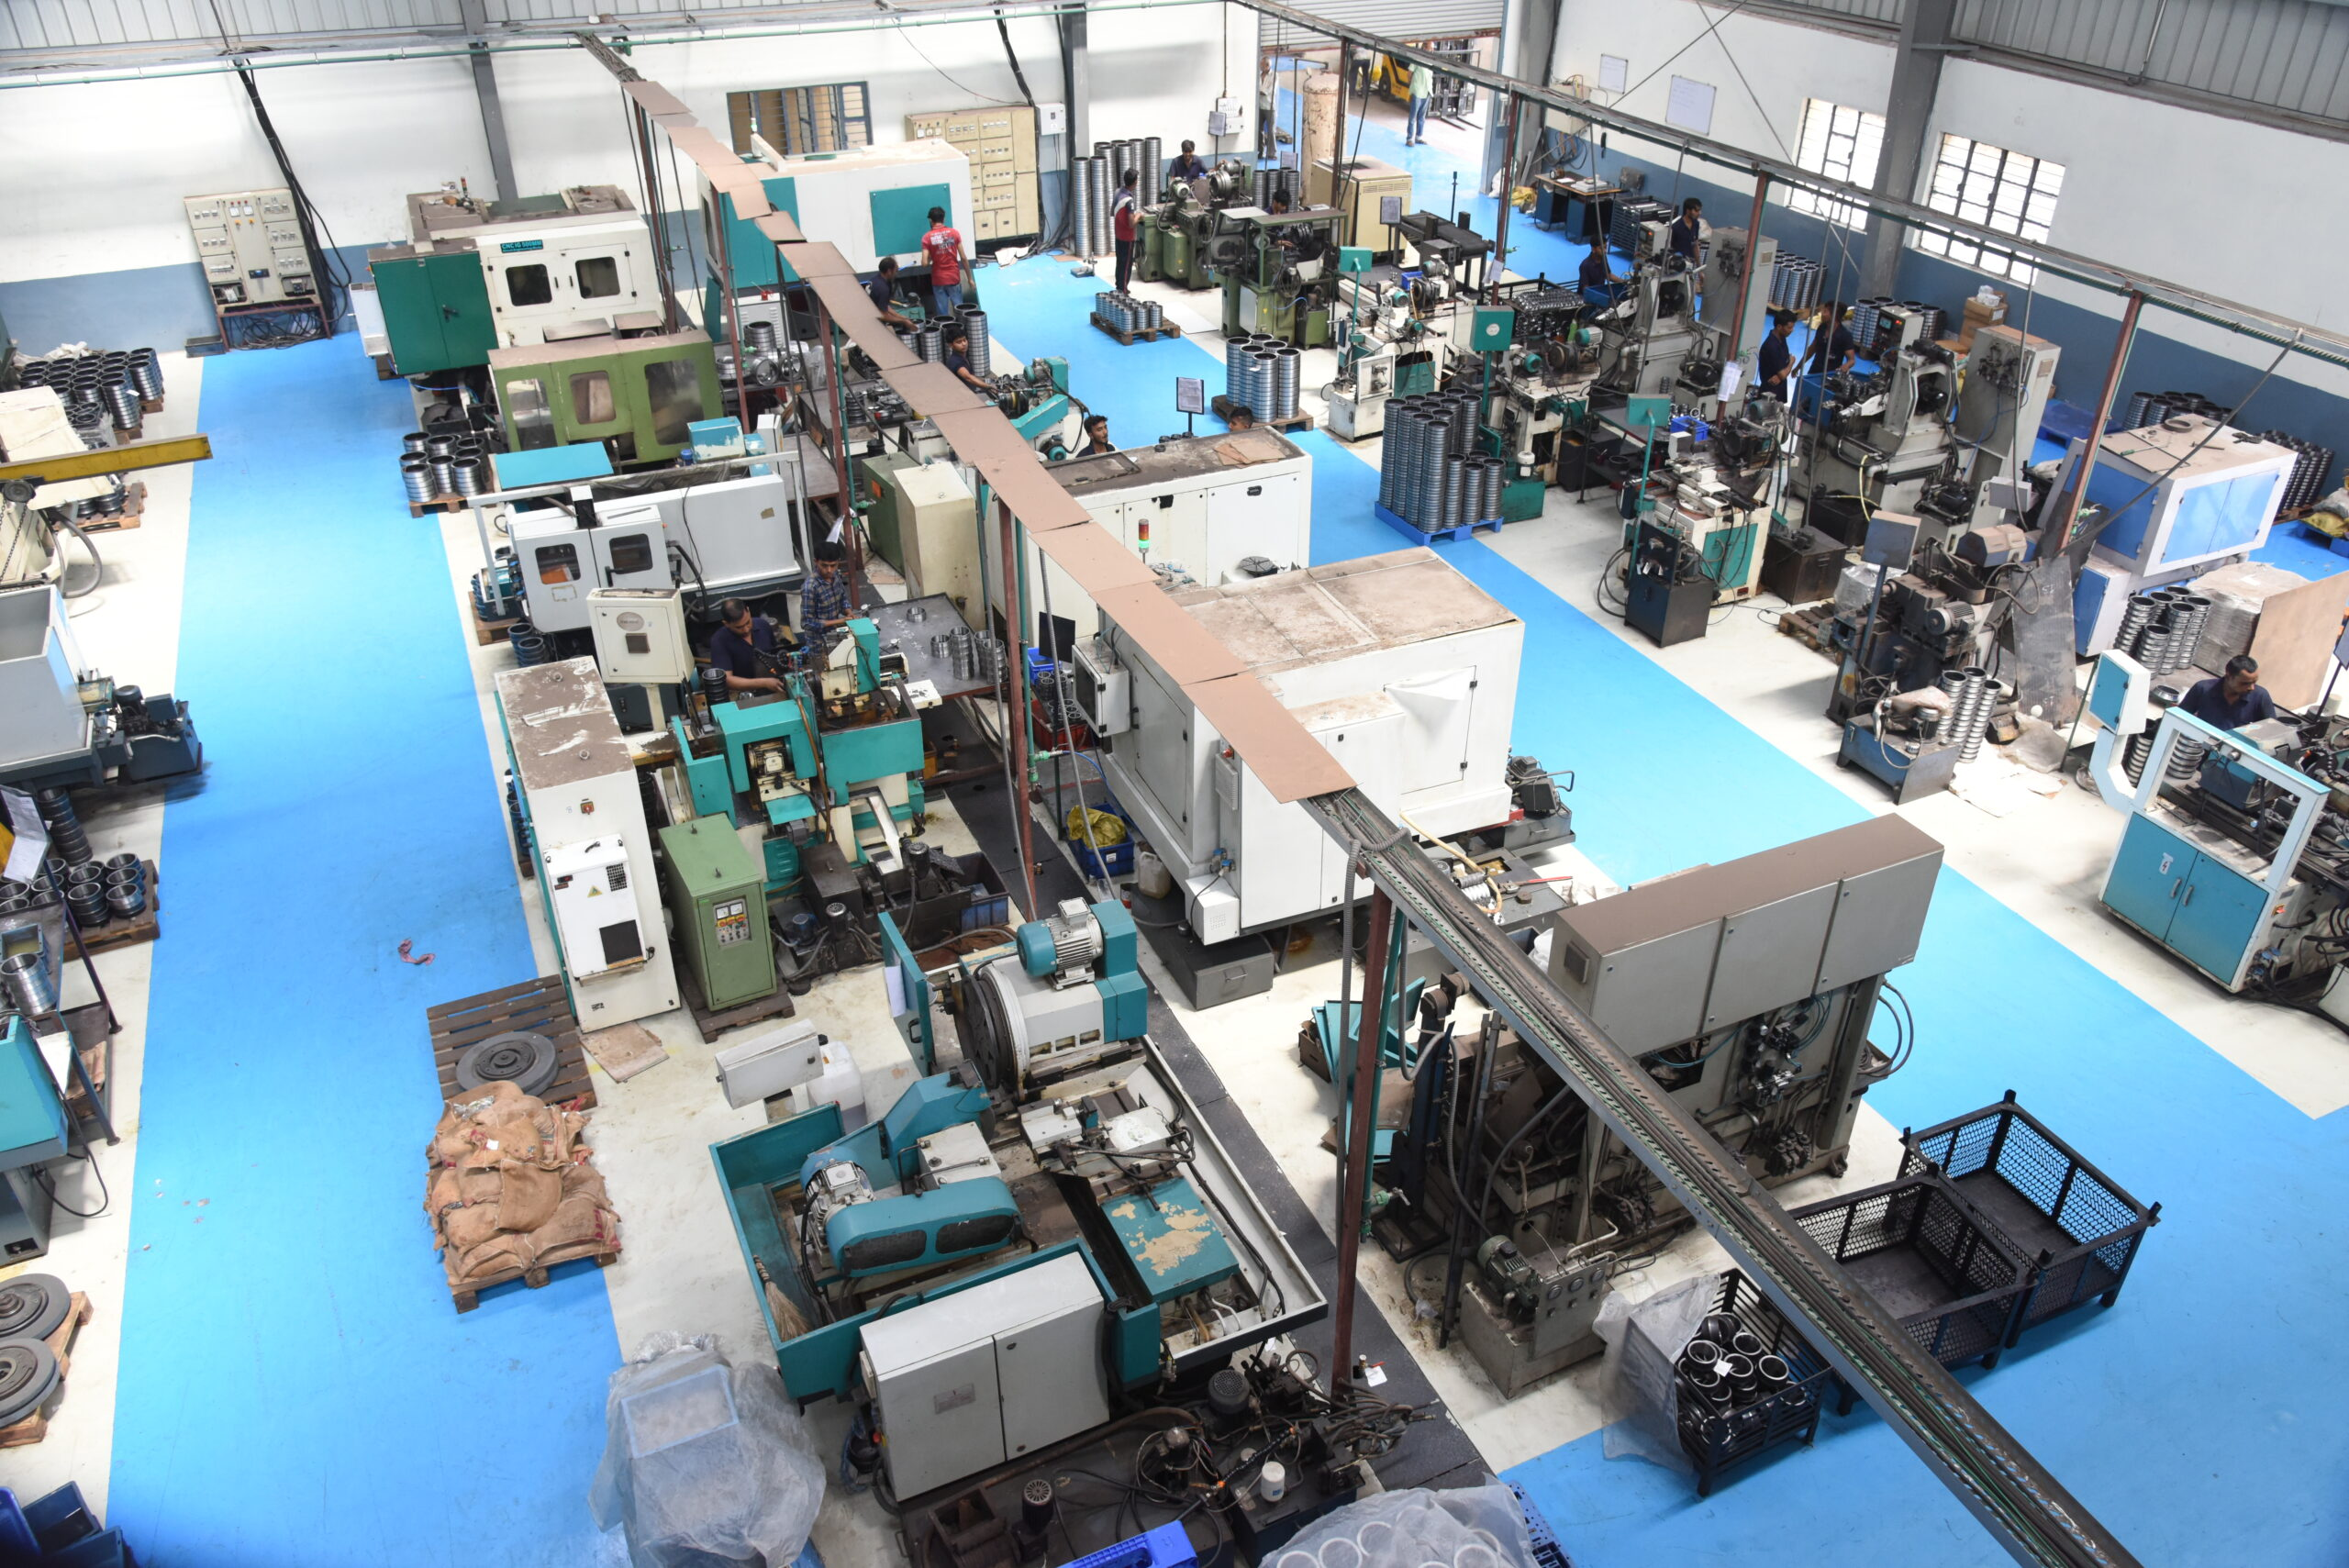 CNC Machine - Production and manufacturing process - 02